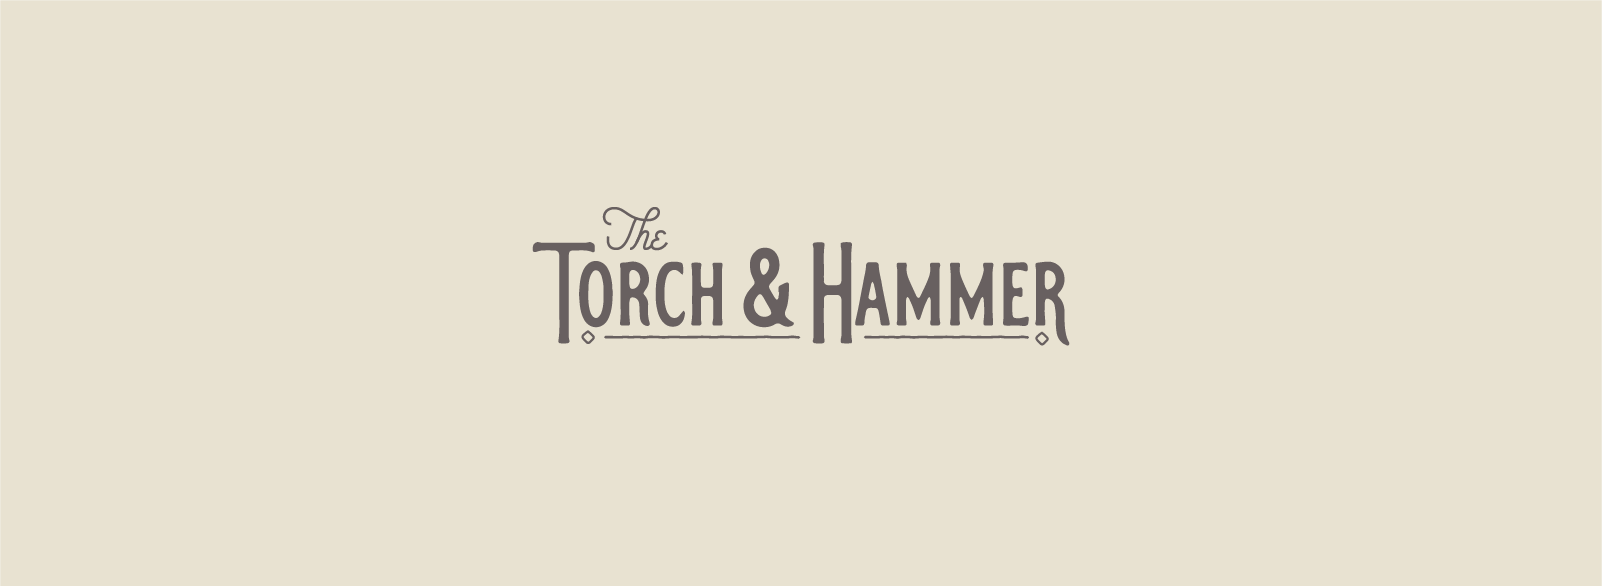 Responsive Fundraising GraphicTorch and Hammer Footer Card.png